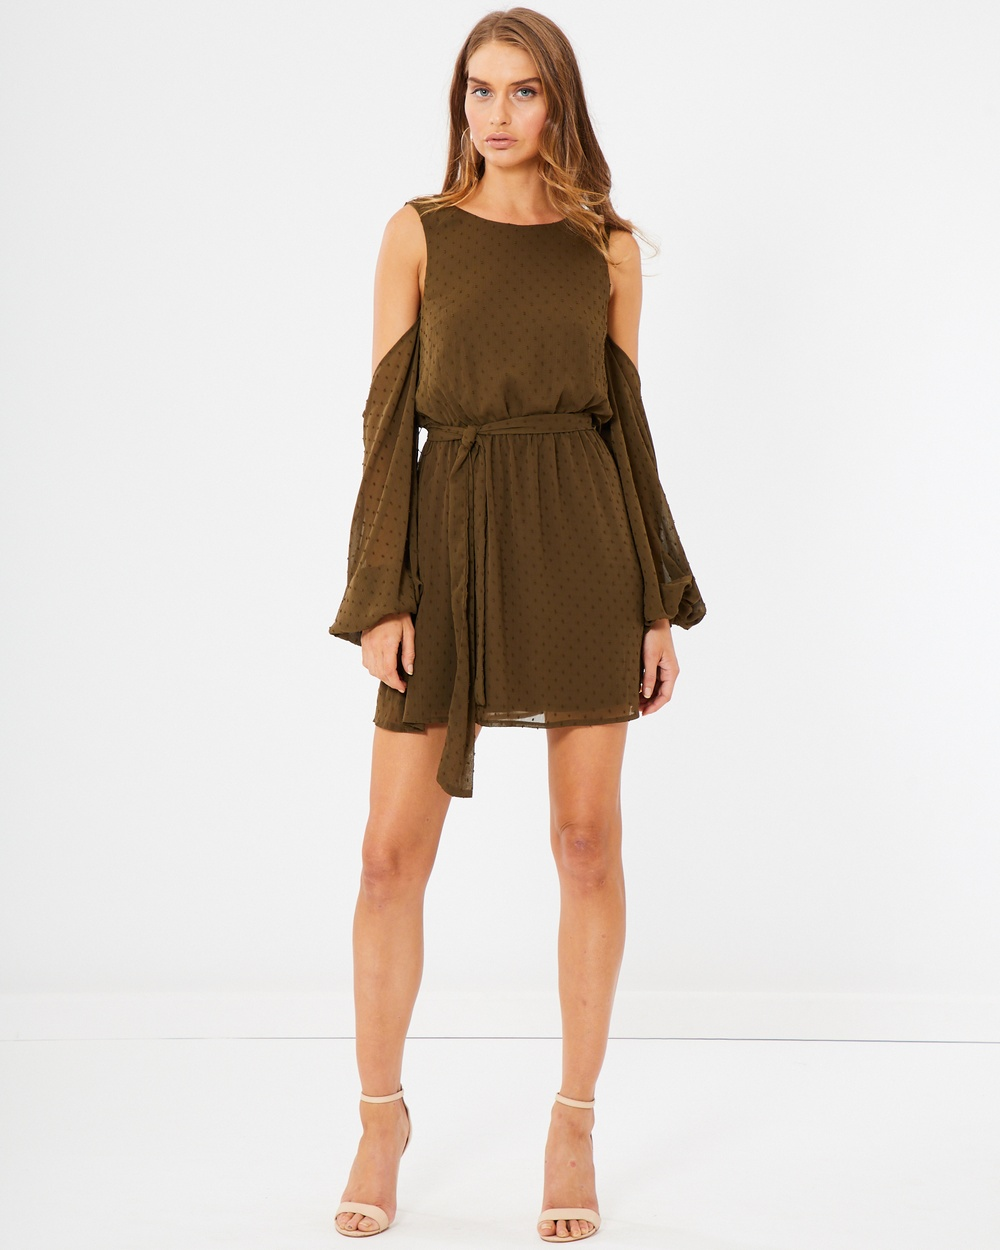 Tussah Kora Cold Shoulder Dress Dresses Khaki Speckle Spot Kora Cold-Shoulder Dress